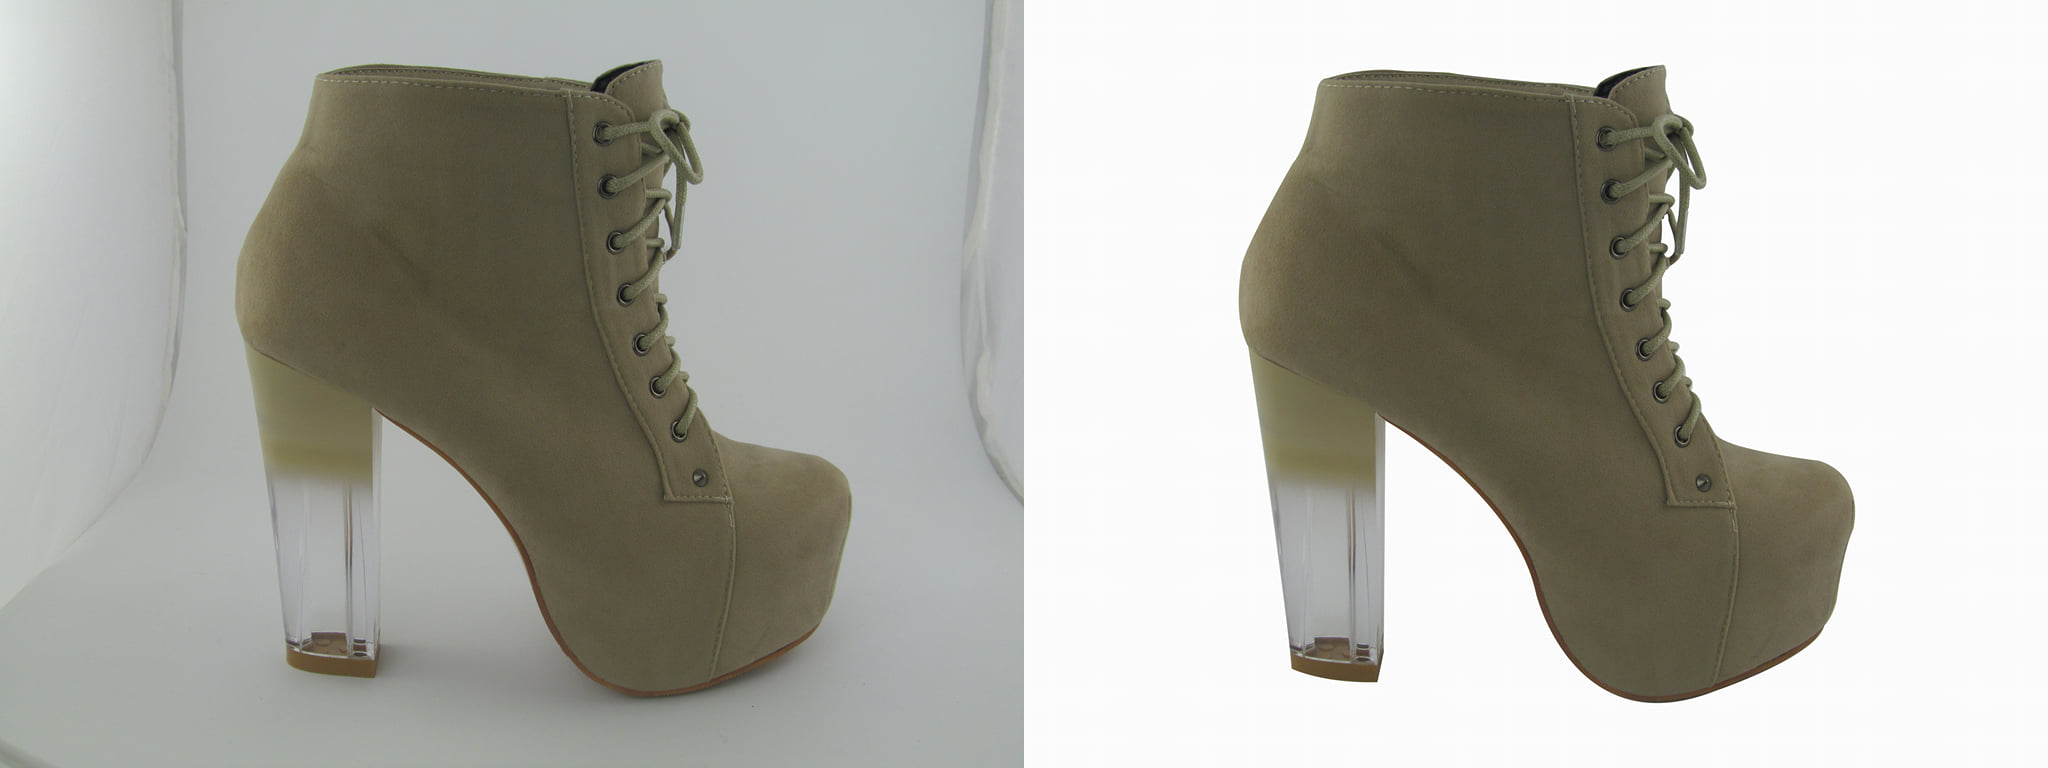 Clipping Path Of Simple Images Or Products